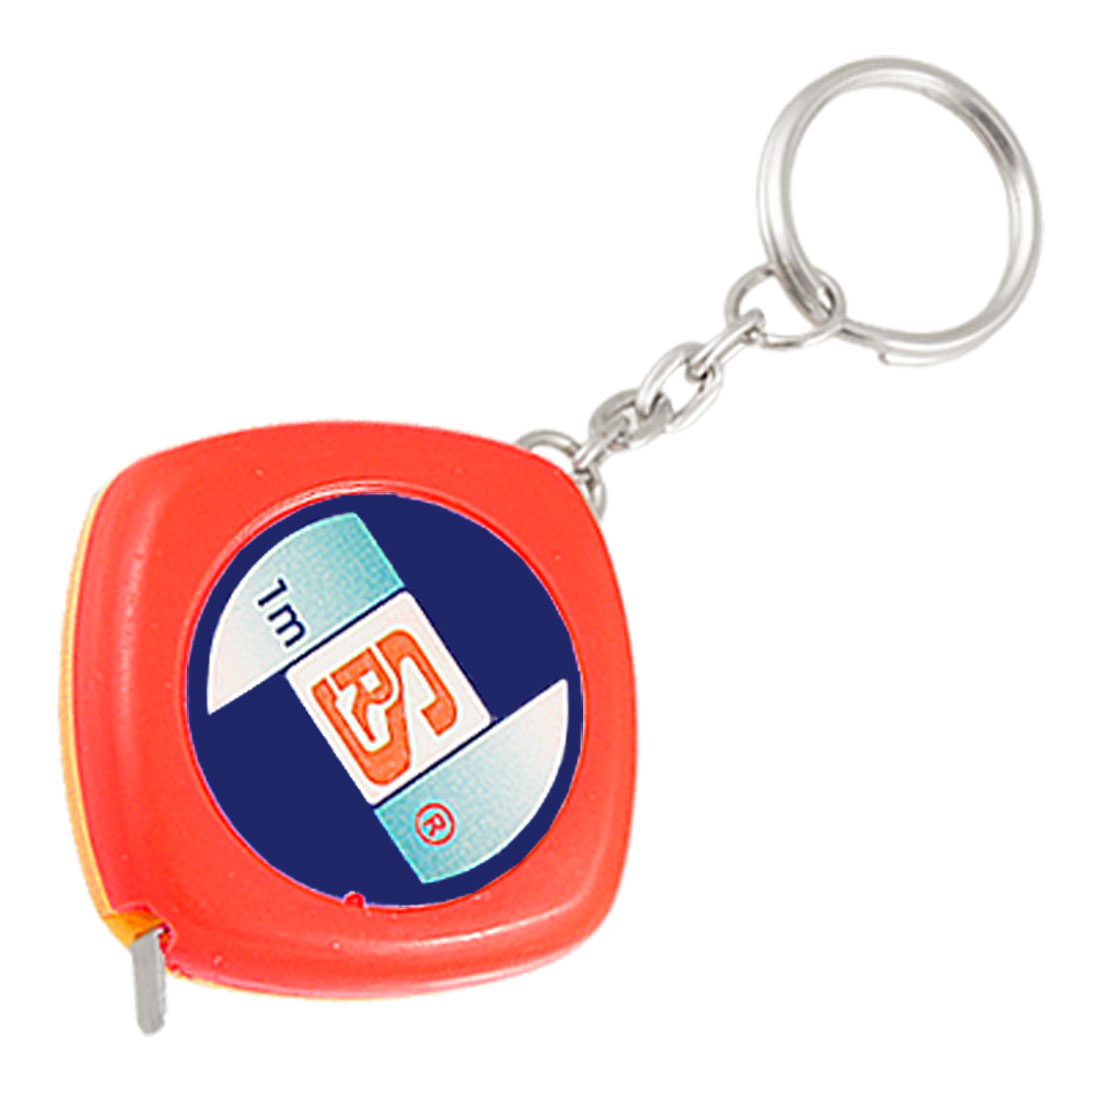 1M 3 Feet 39 Inches Orange Red Plastic Case Key Chain Measuring Tape